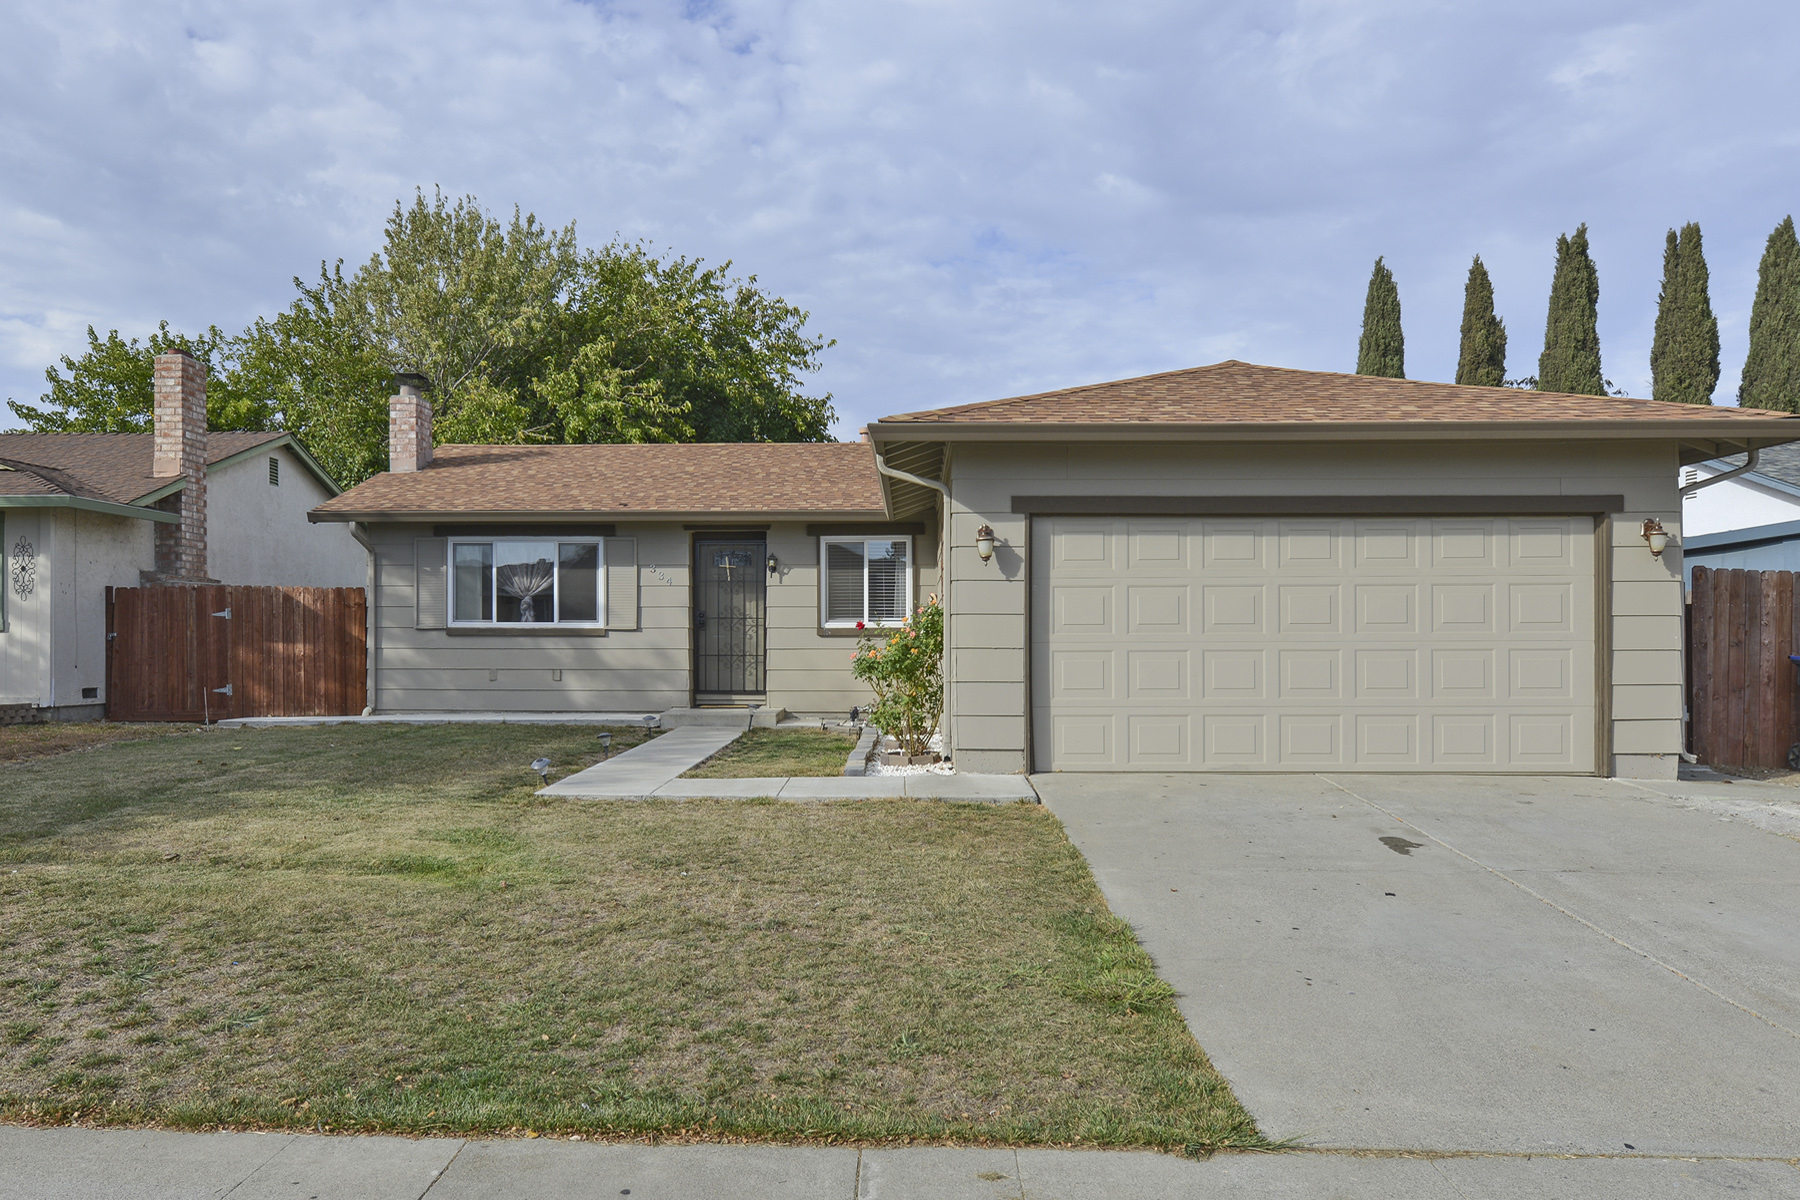 Property For Sale at 334 Bald Pate Dr, Suisun City, CA 94585